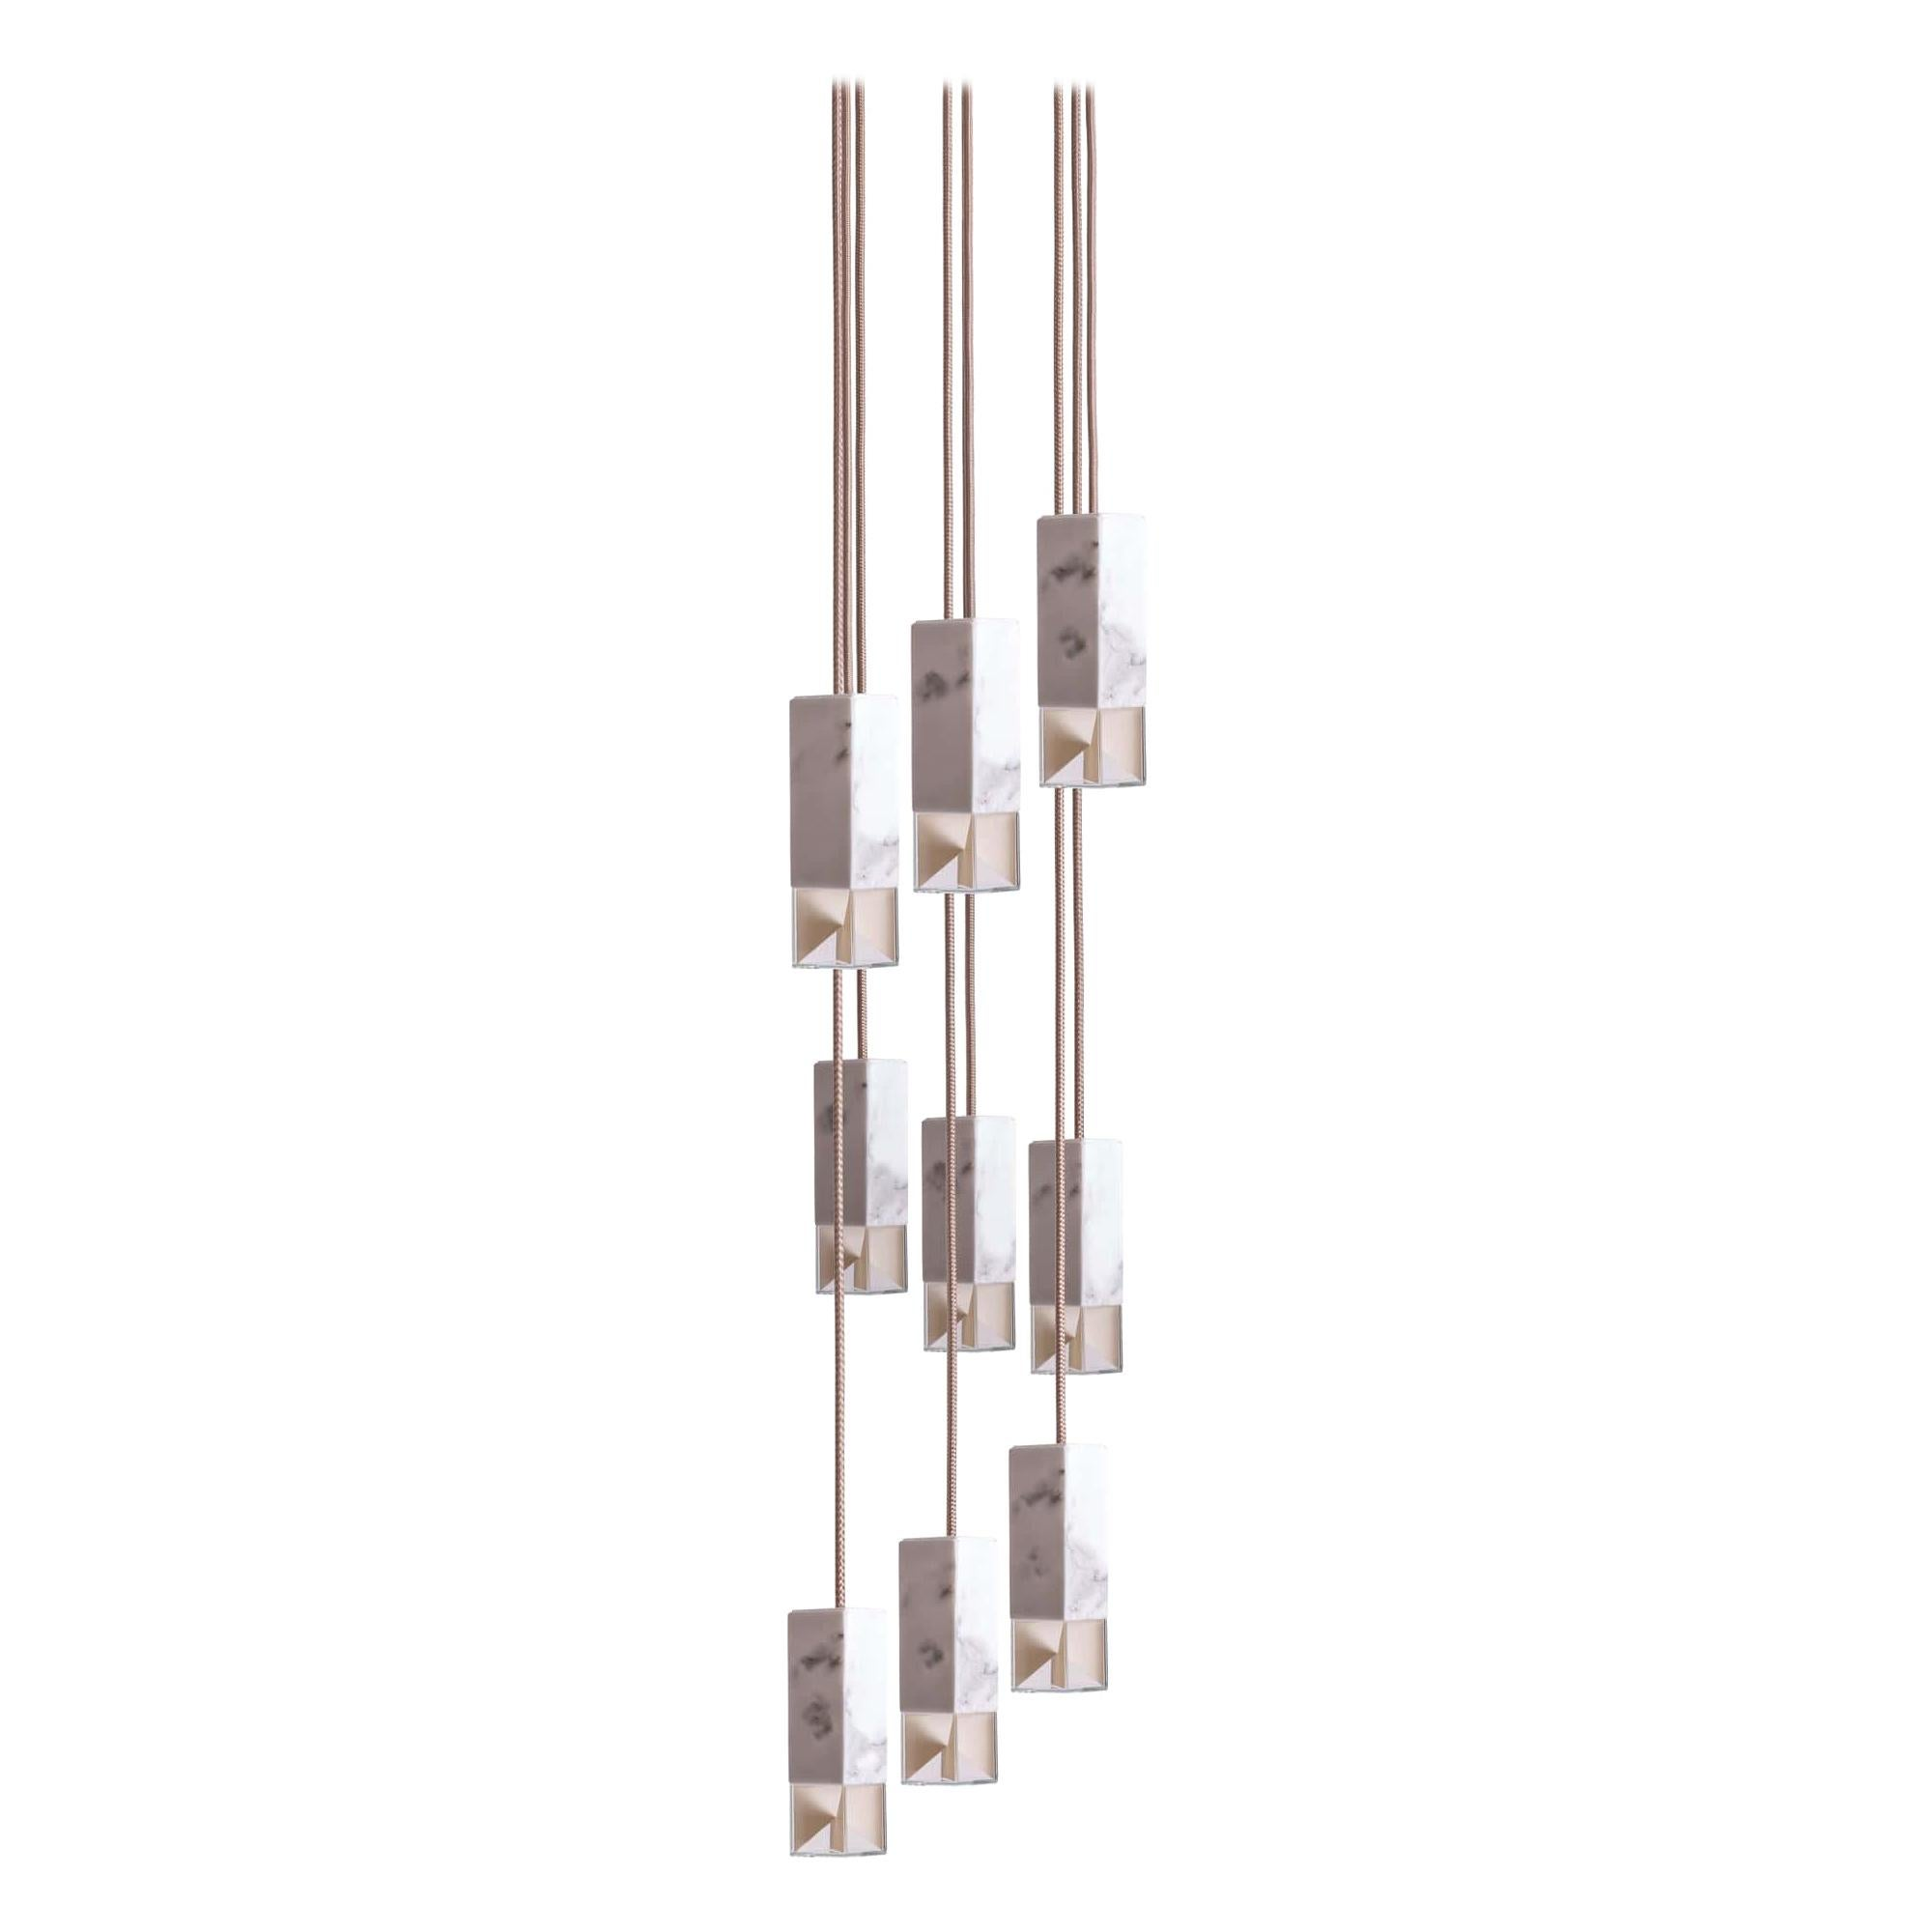 Lamp One 9-Light Chandelier in Marble by Formaminima